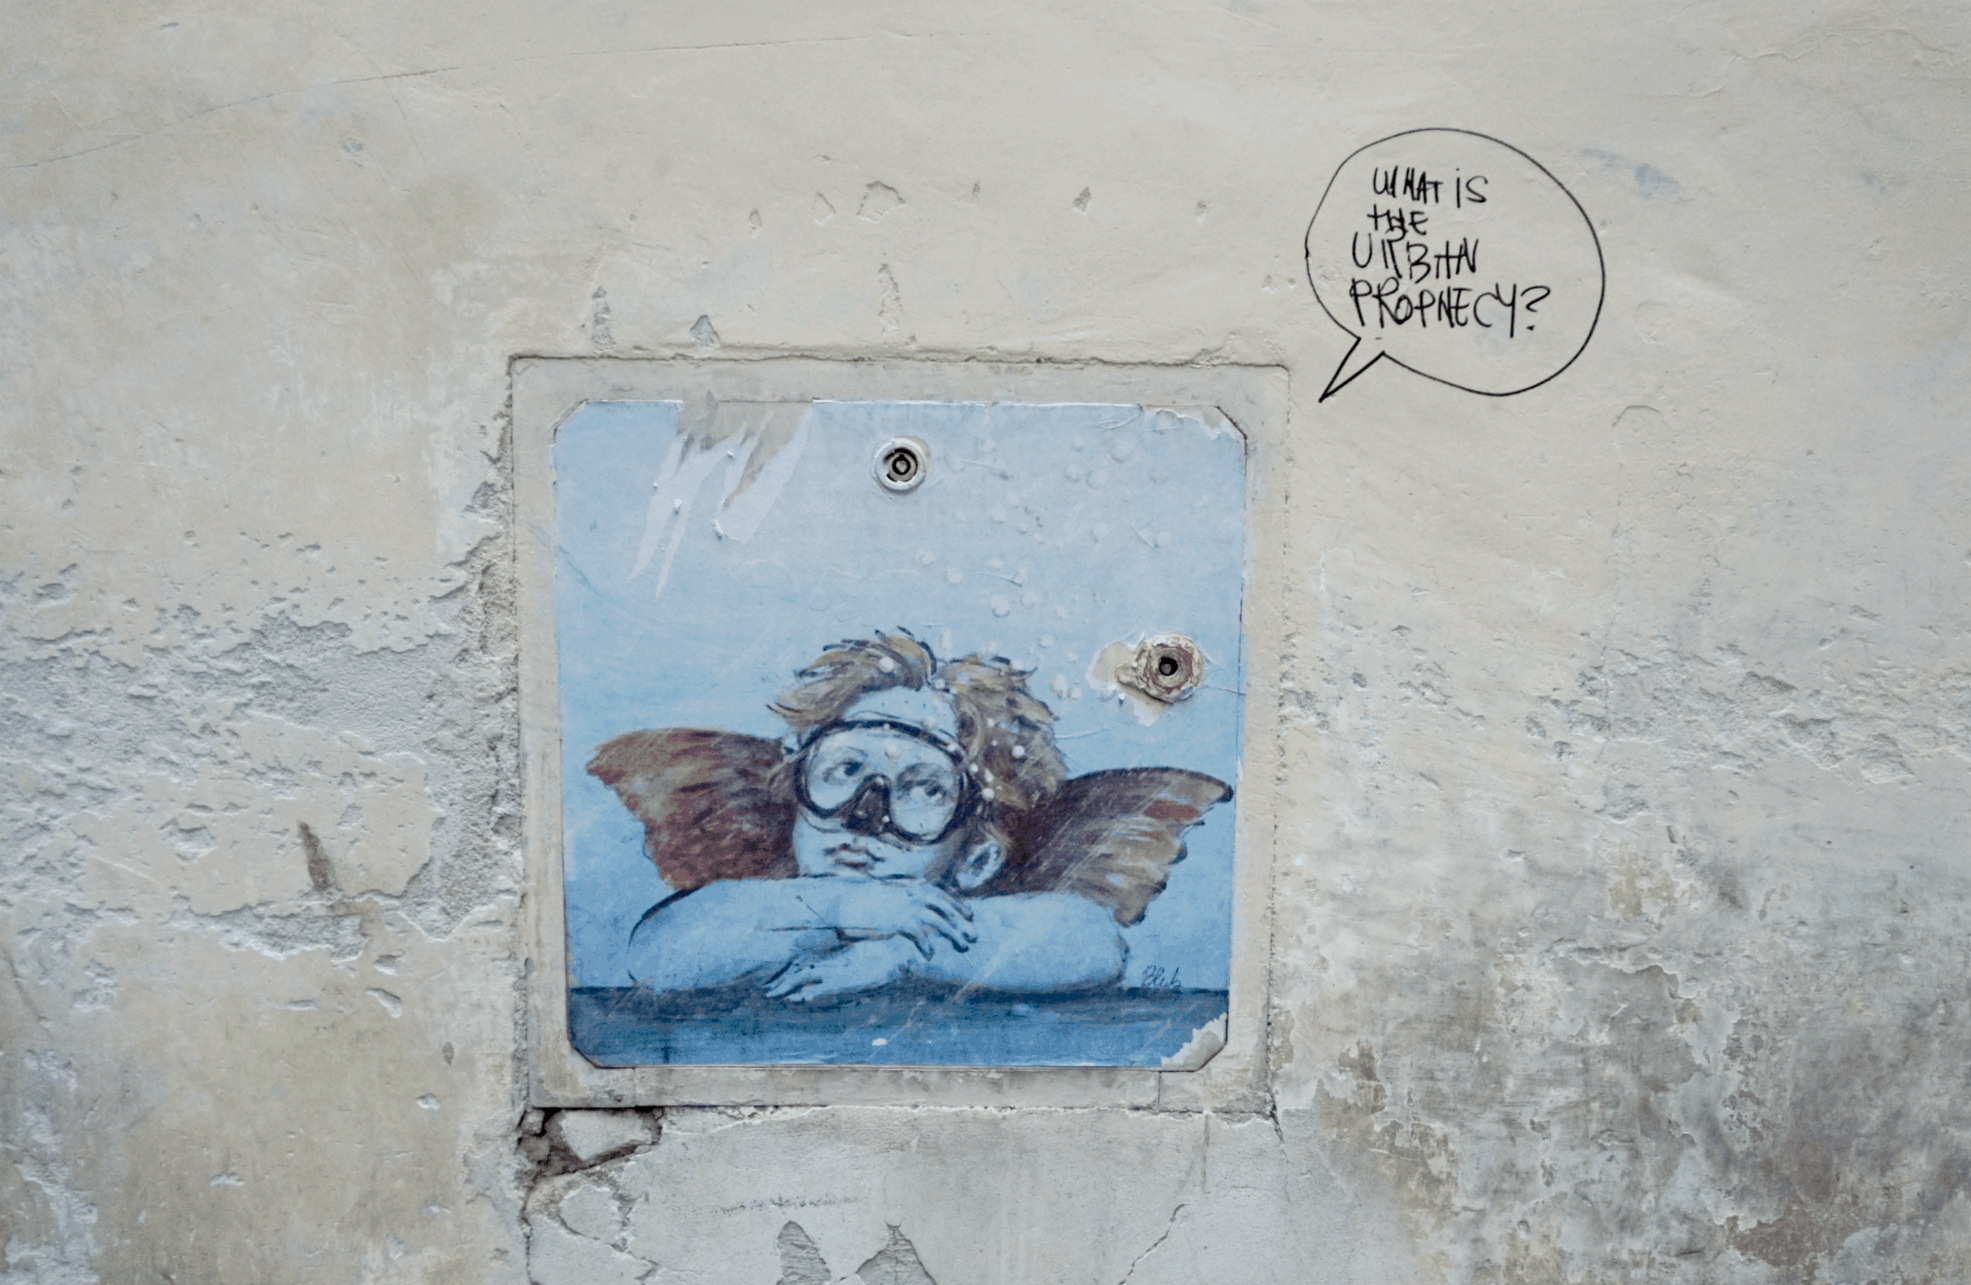 Exploring street art in Florence as part of a guided tour